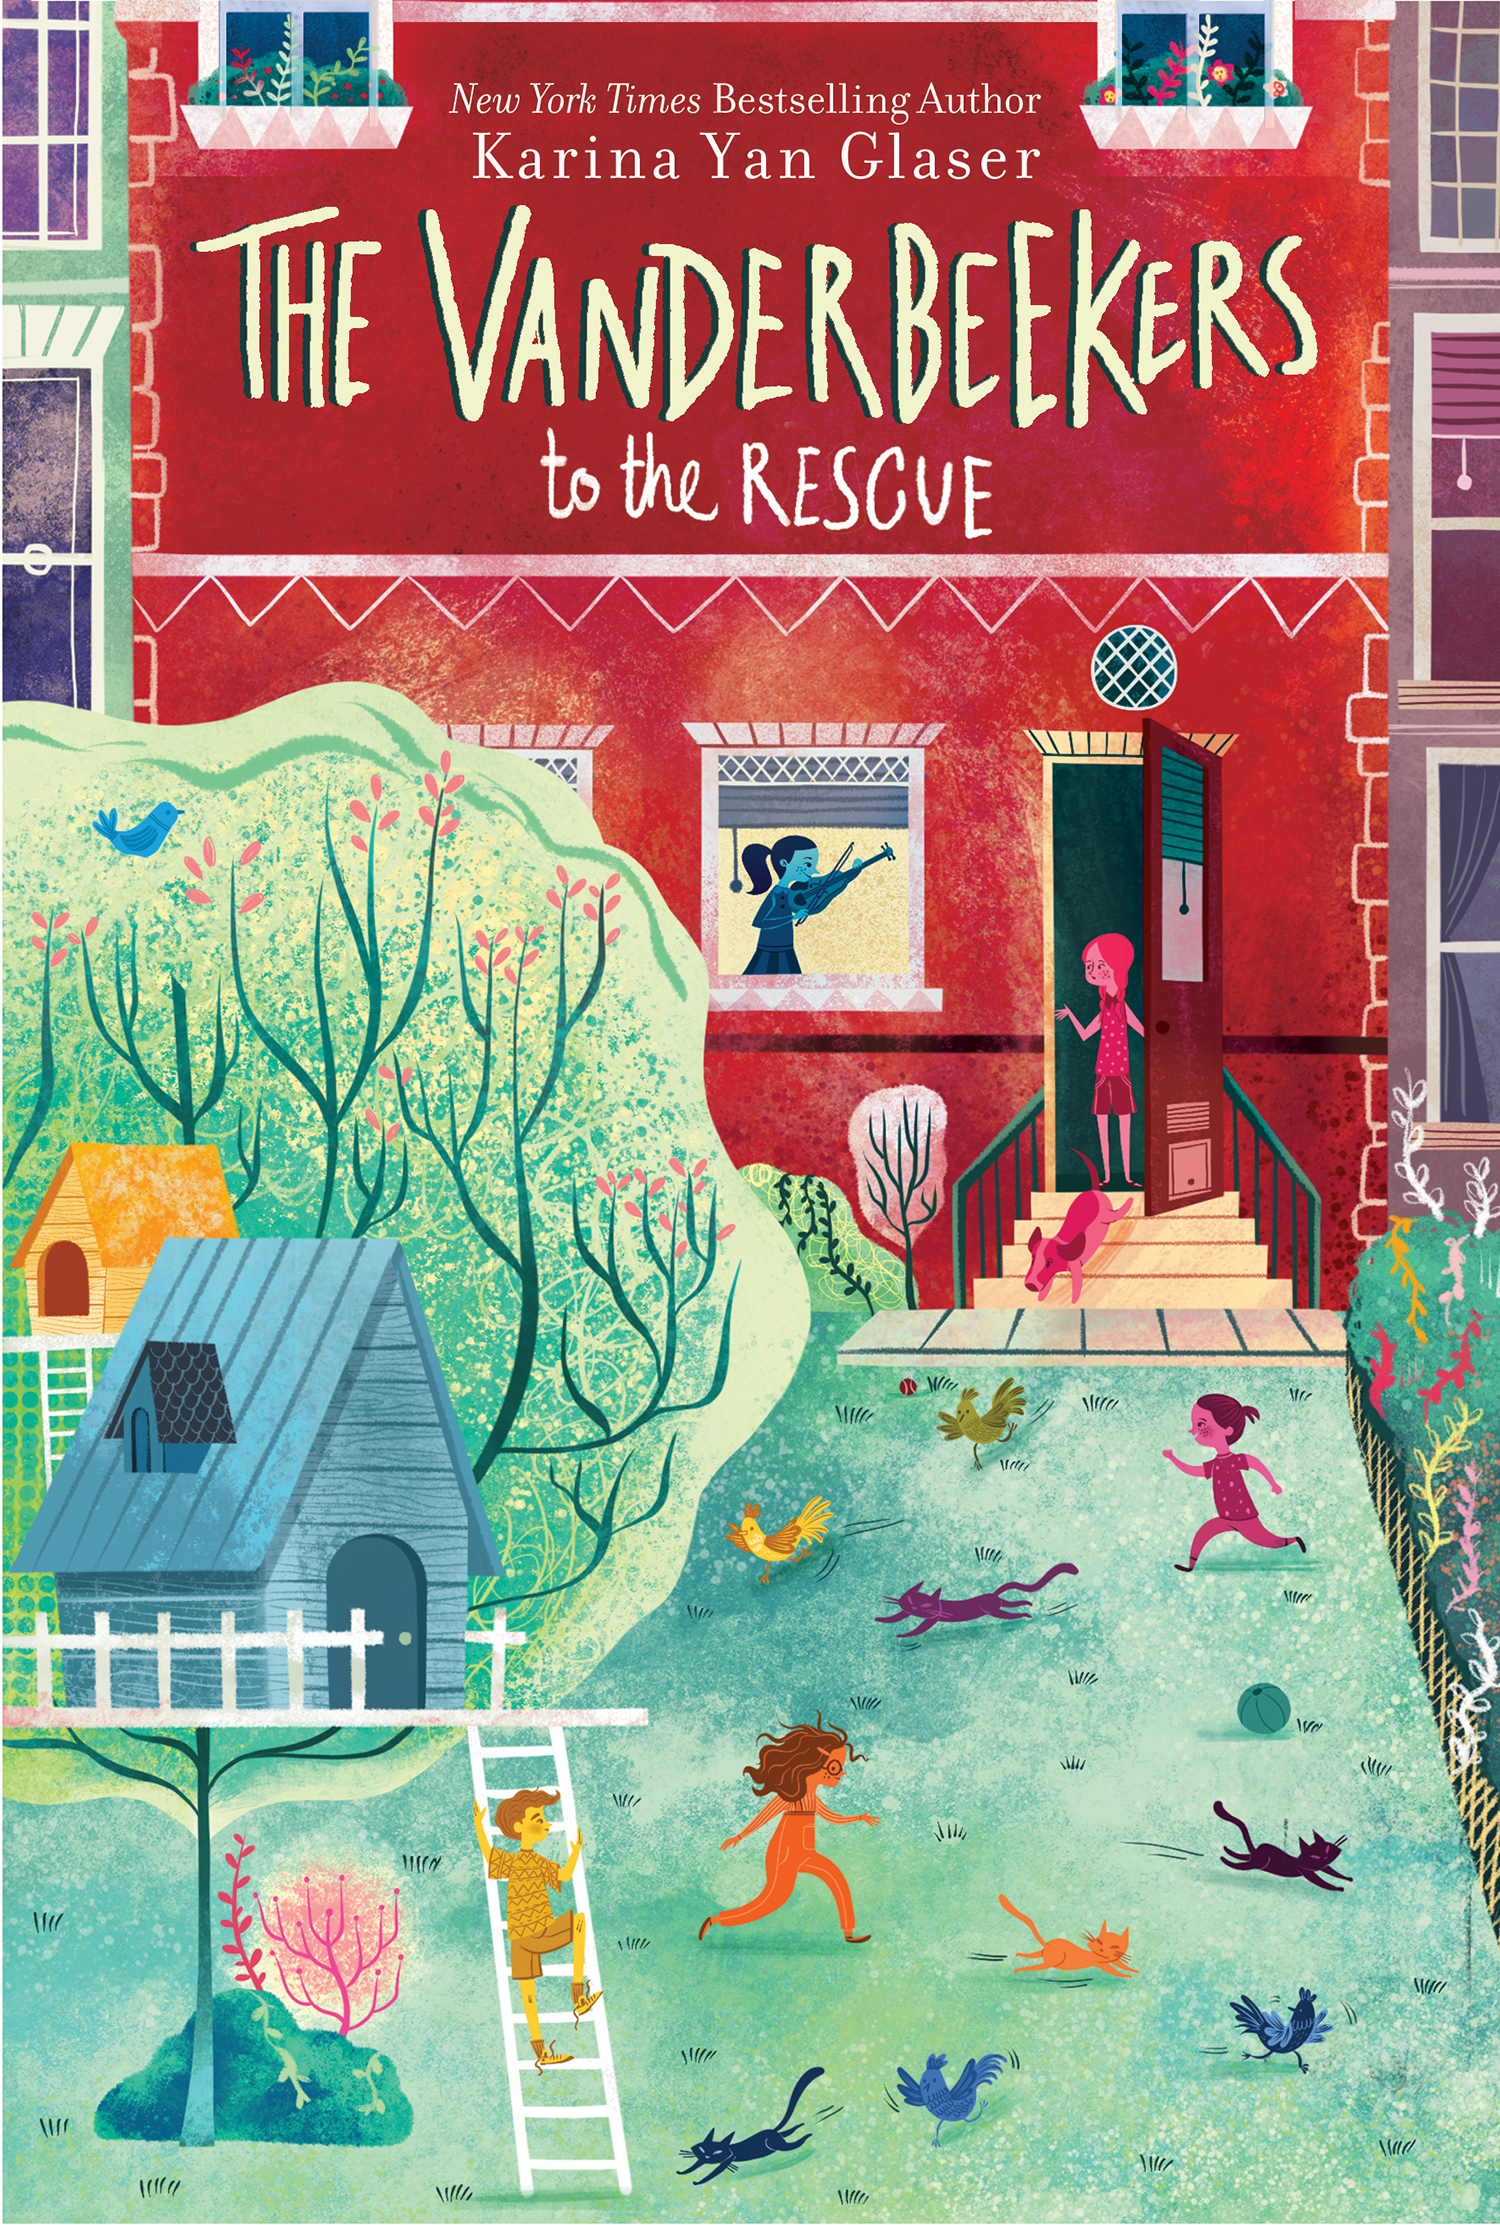 (Vanderbeekers 3) Glaser, Karina Yan - The Vanderbeekers to the Rescue